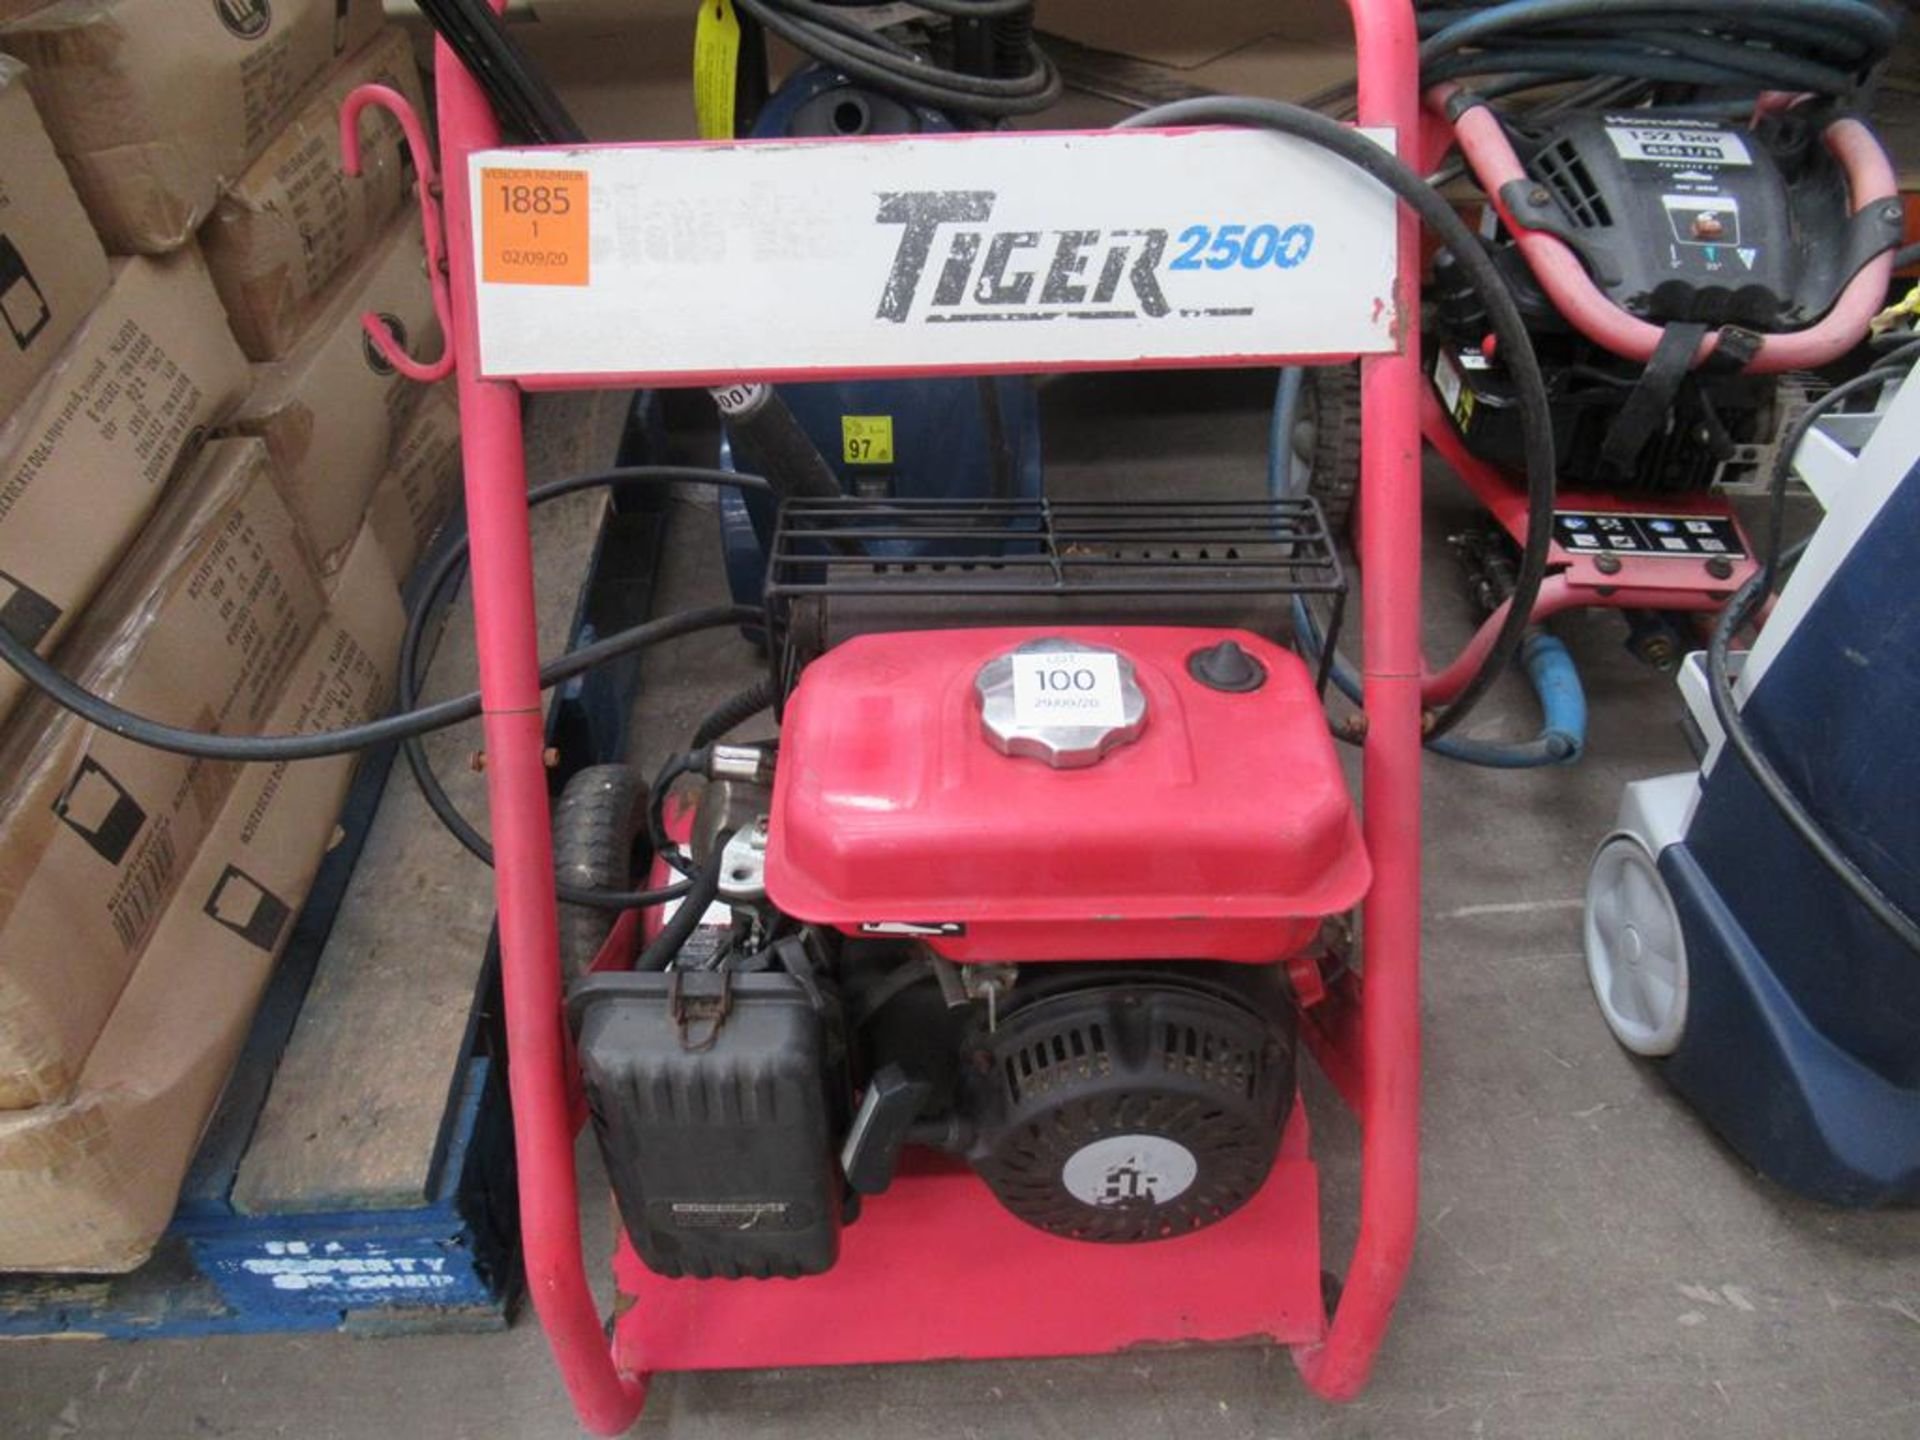 Clarke Tiger 2500 petrol powered pressure washer - Image 2 of 2